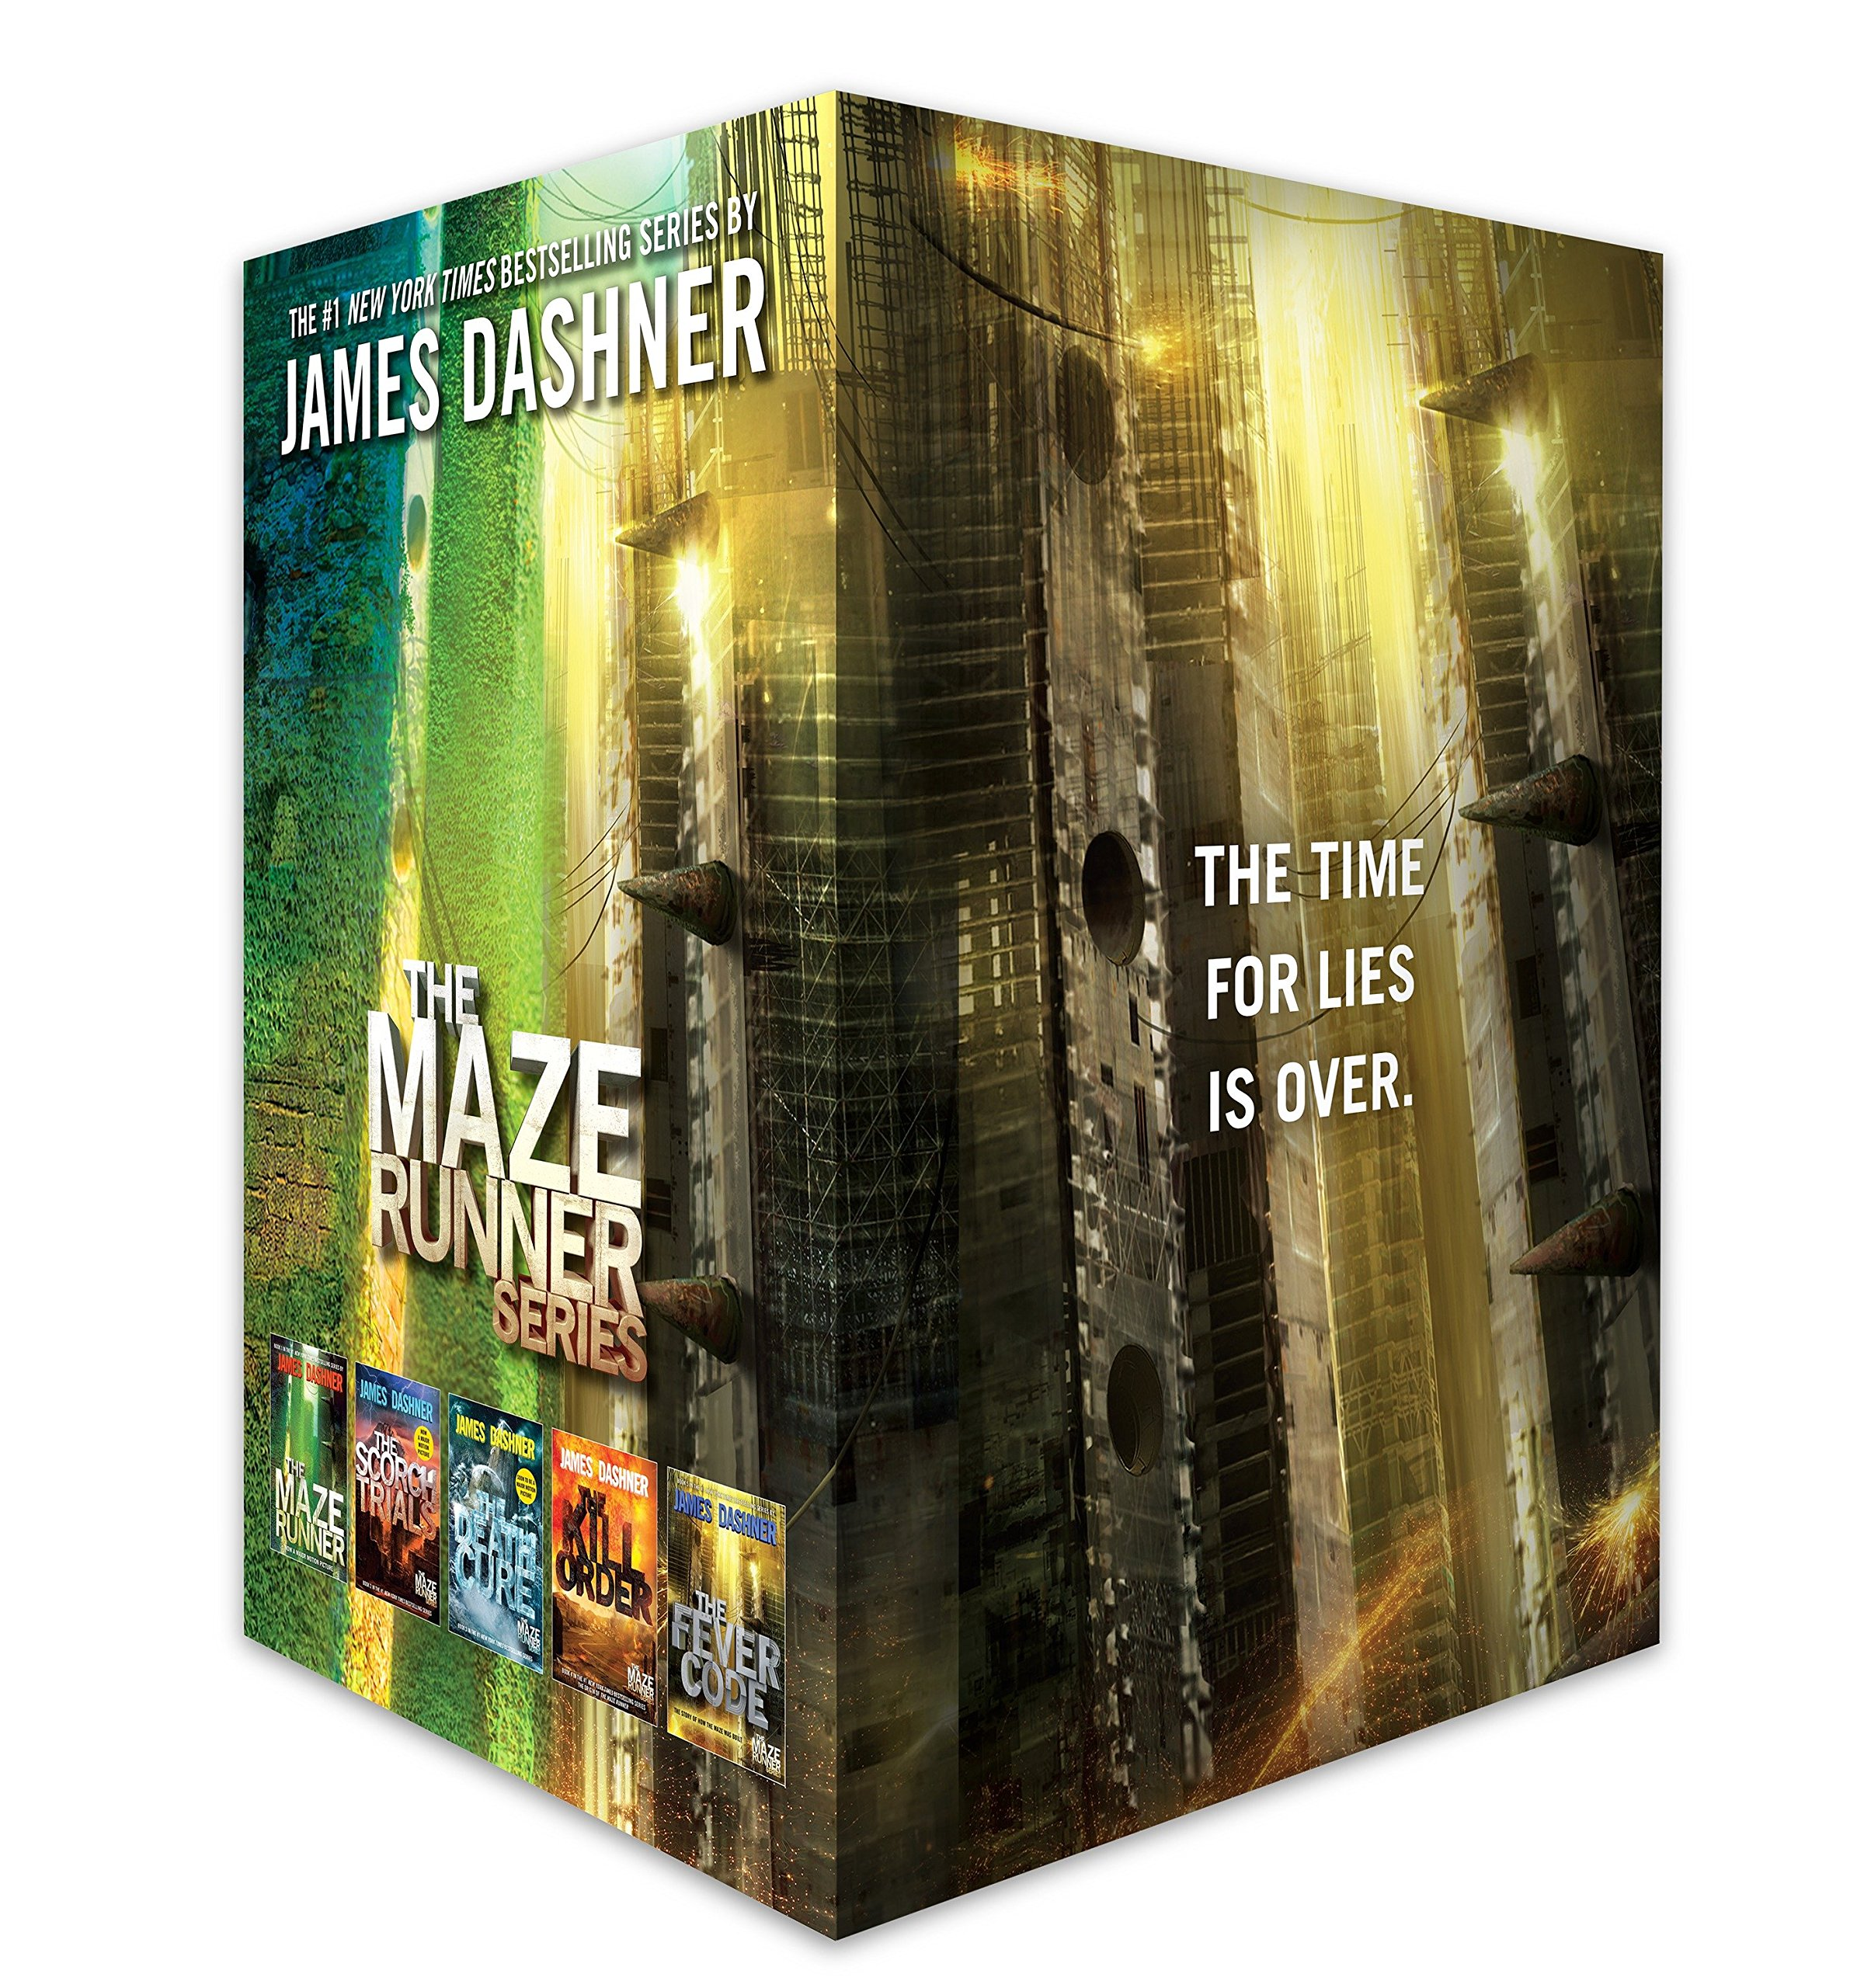 The Maze Runner Series Complete Collection Boxed Set (5-Book) by Delacorte Press